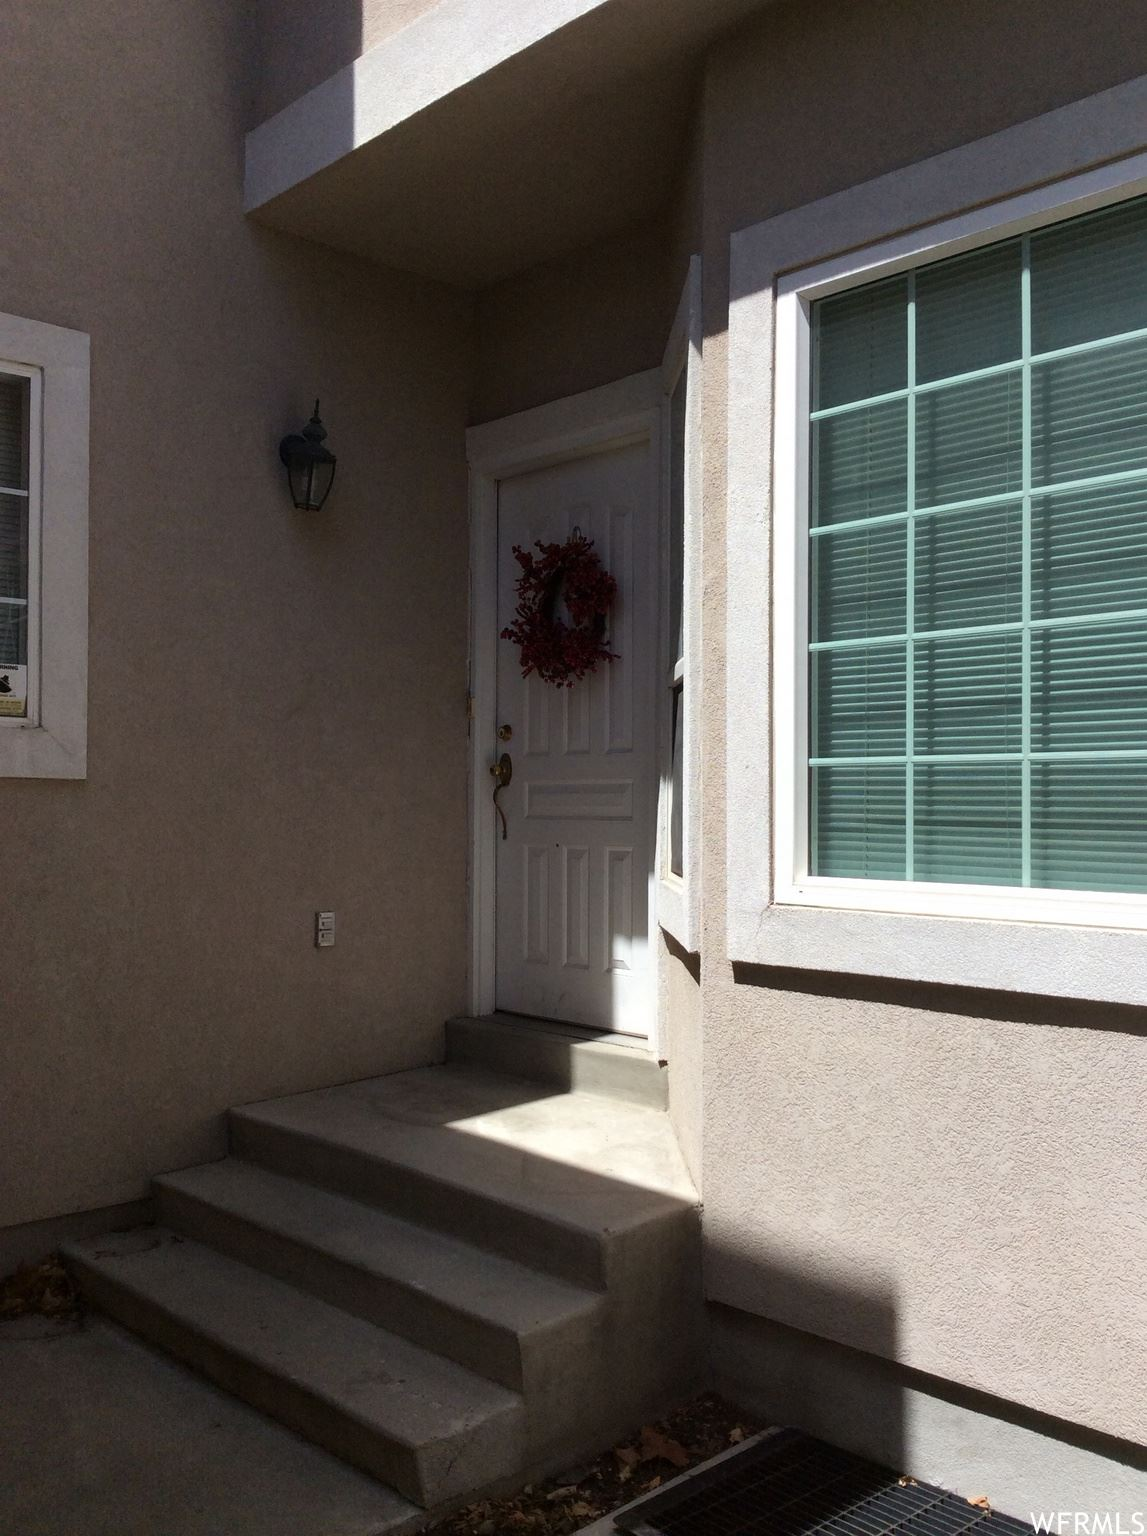 Photo of 368 W 100 N, Orem, UT 84057 (MLS # 1689779)